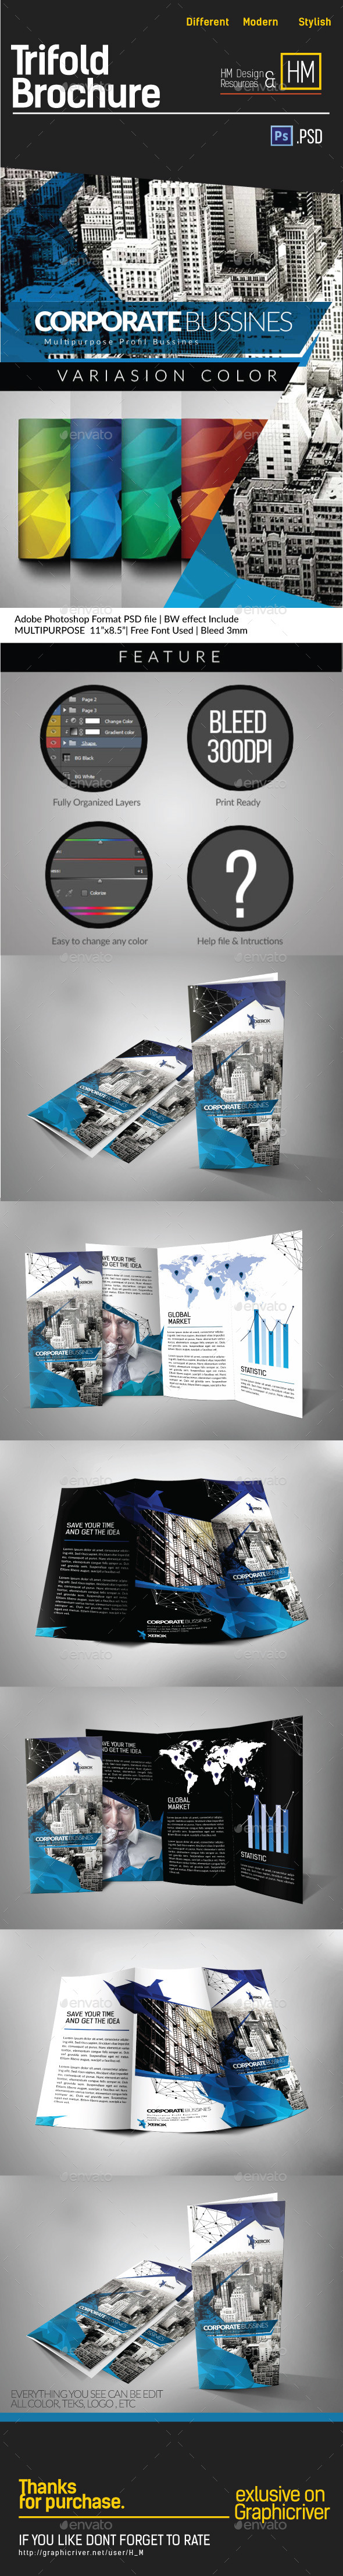 Modern Architecture Tri-fold Brochure - Corporate Brochures